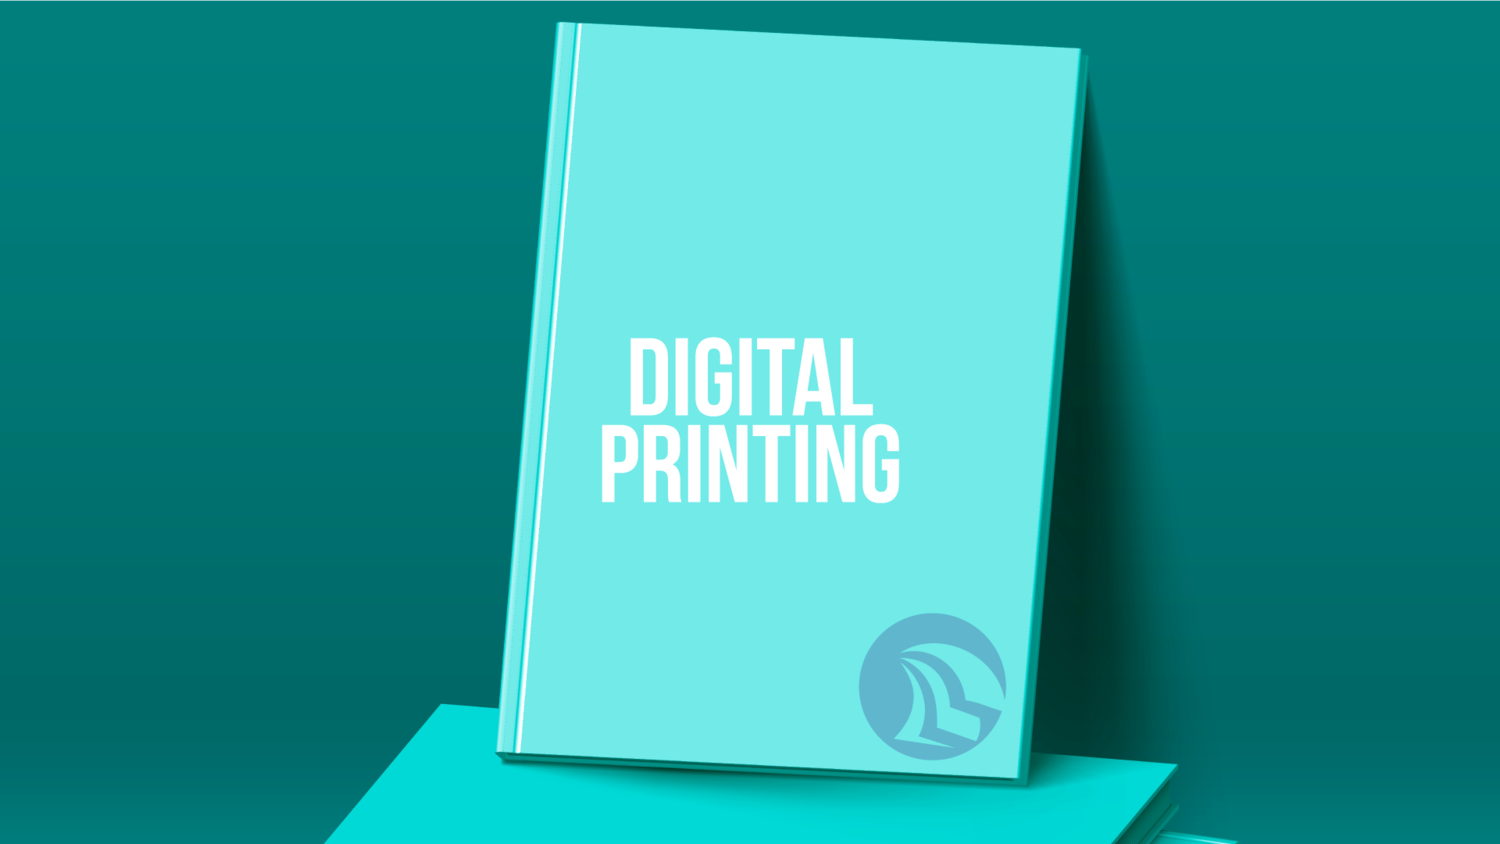 Digital Printing - Digital Printing up to A3 / Semi-gloss finish / Low/high volume business cards / High quality gloss or matt Brochures / CD Covers / Labels / Invitations / Menus / Programmes.